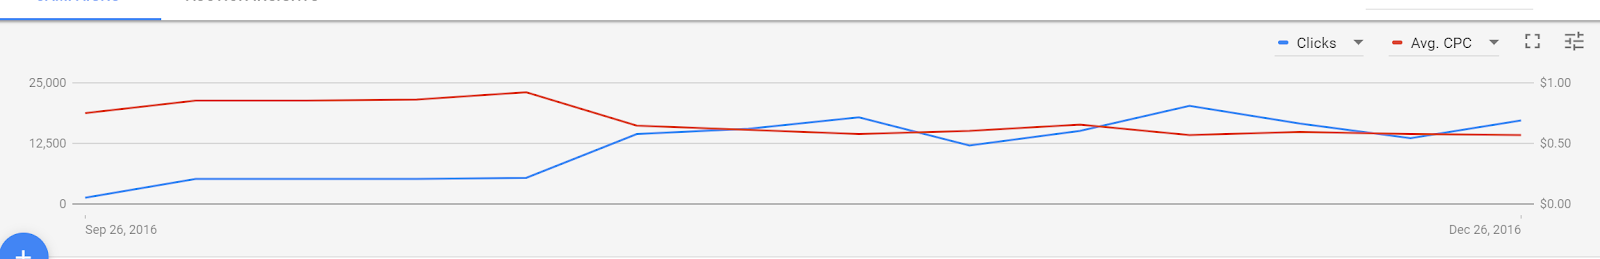 AdWords AVG CPC is going down